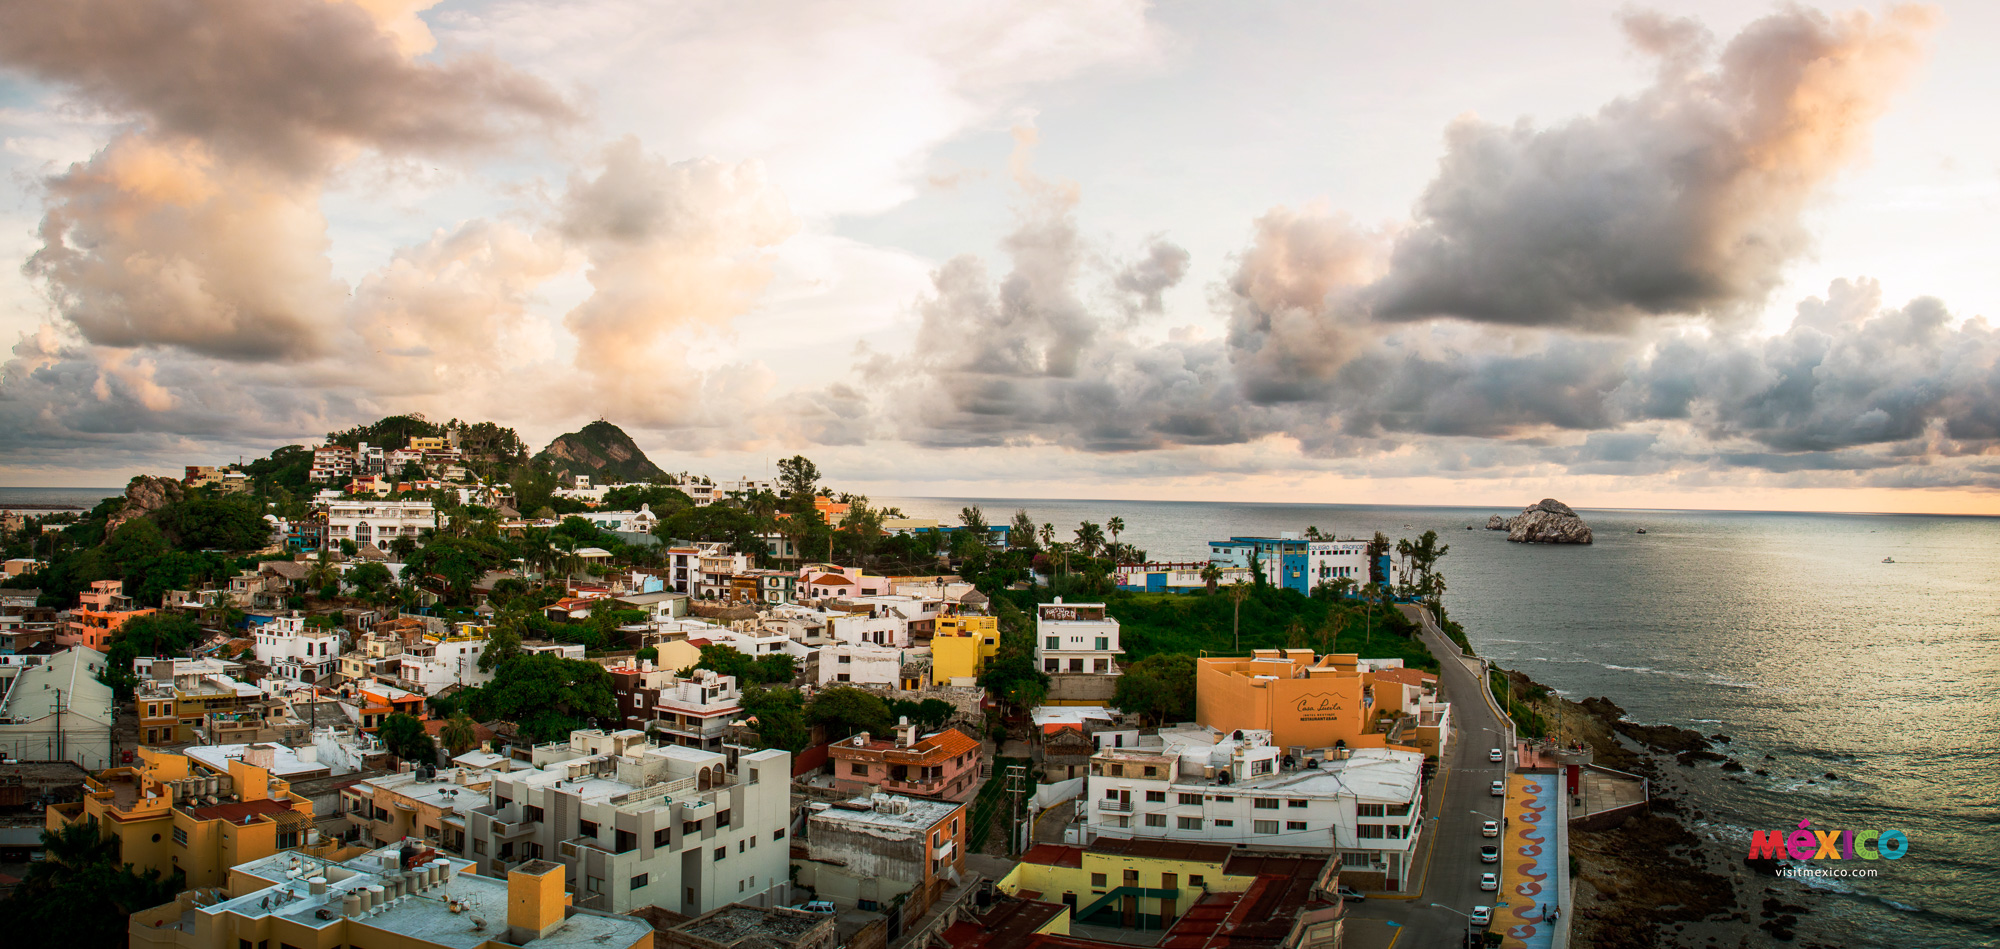 04_RESS_Mazatlan_Overview-Edit.jpg